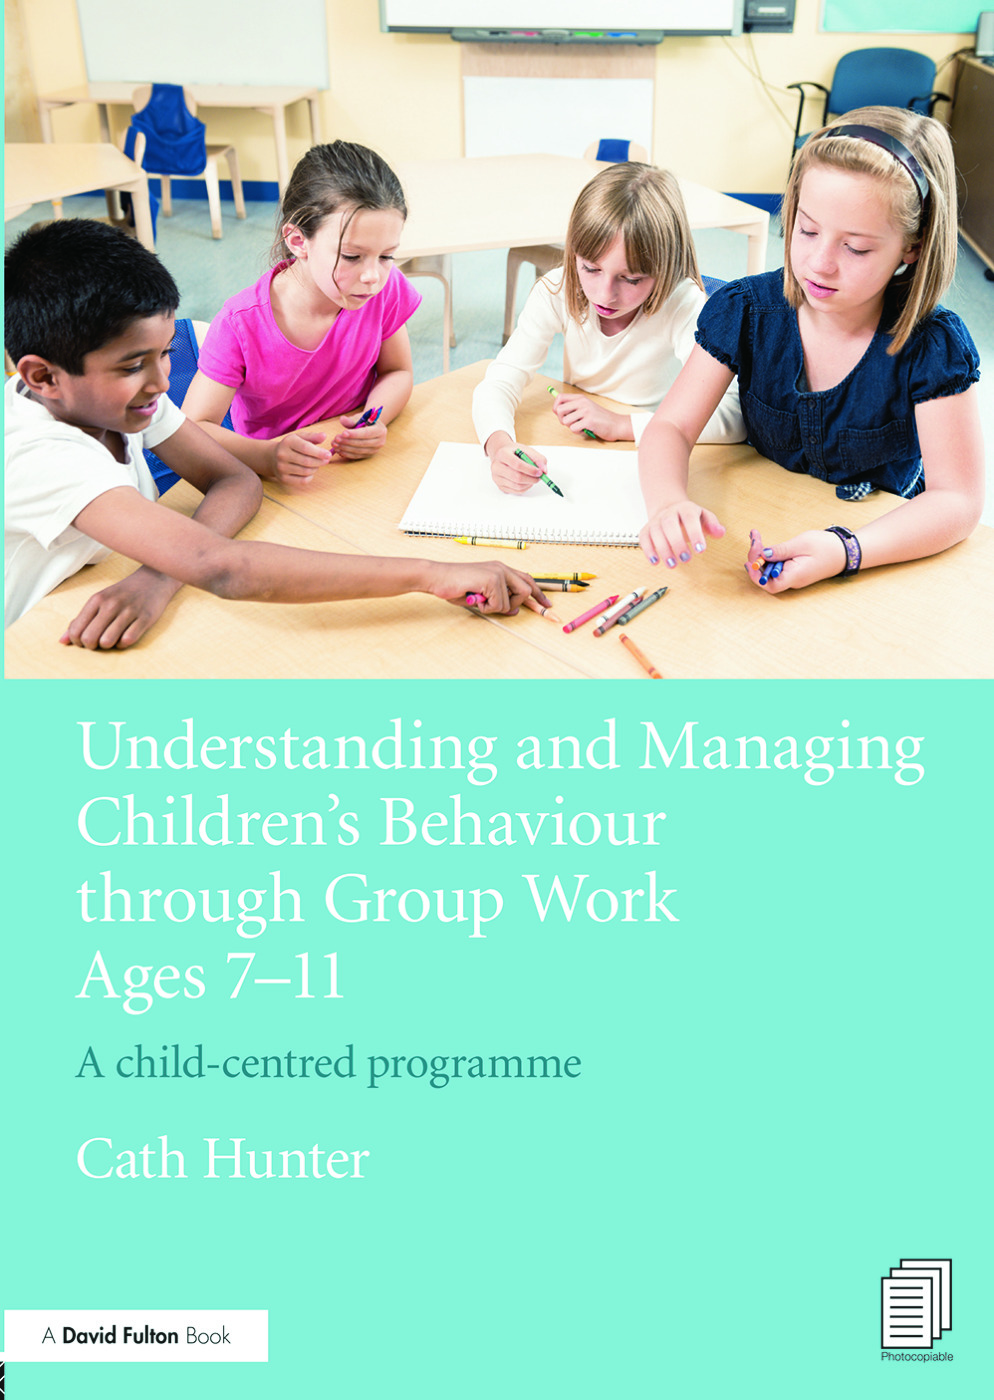 Understanding and Managing Children's Behaviour through Group Work Ages 7 - 11: A child-centred programme book cover